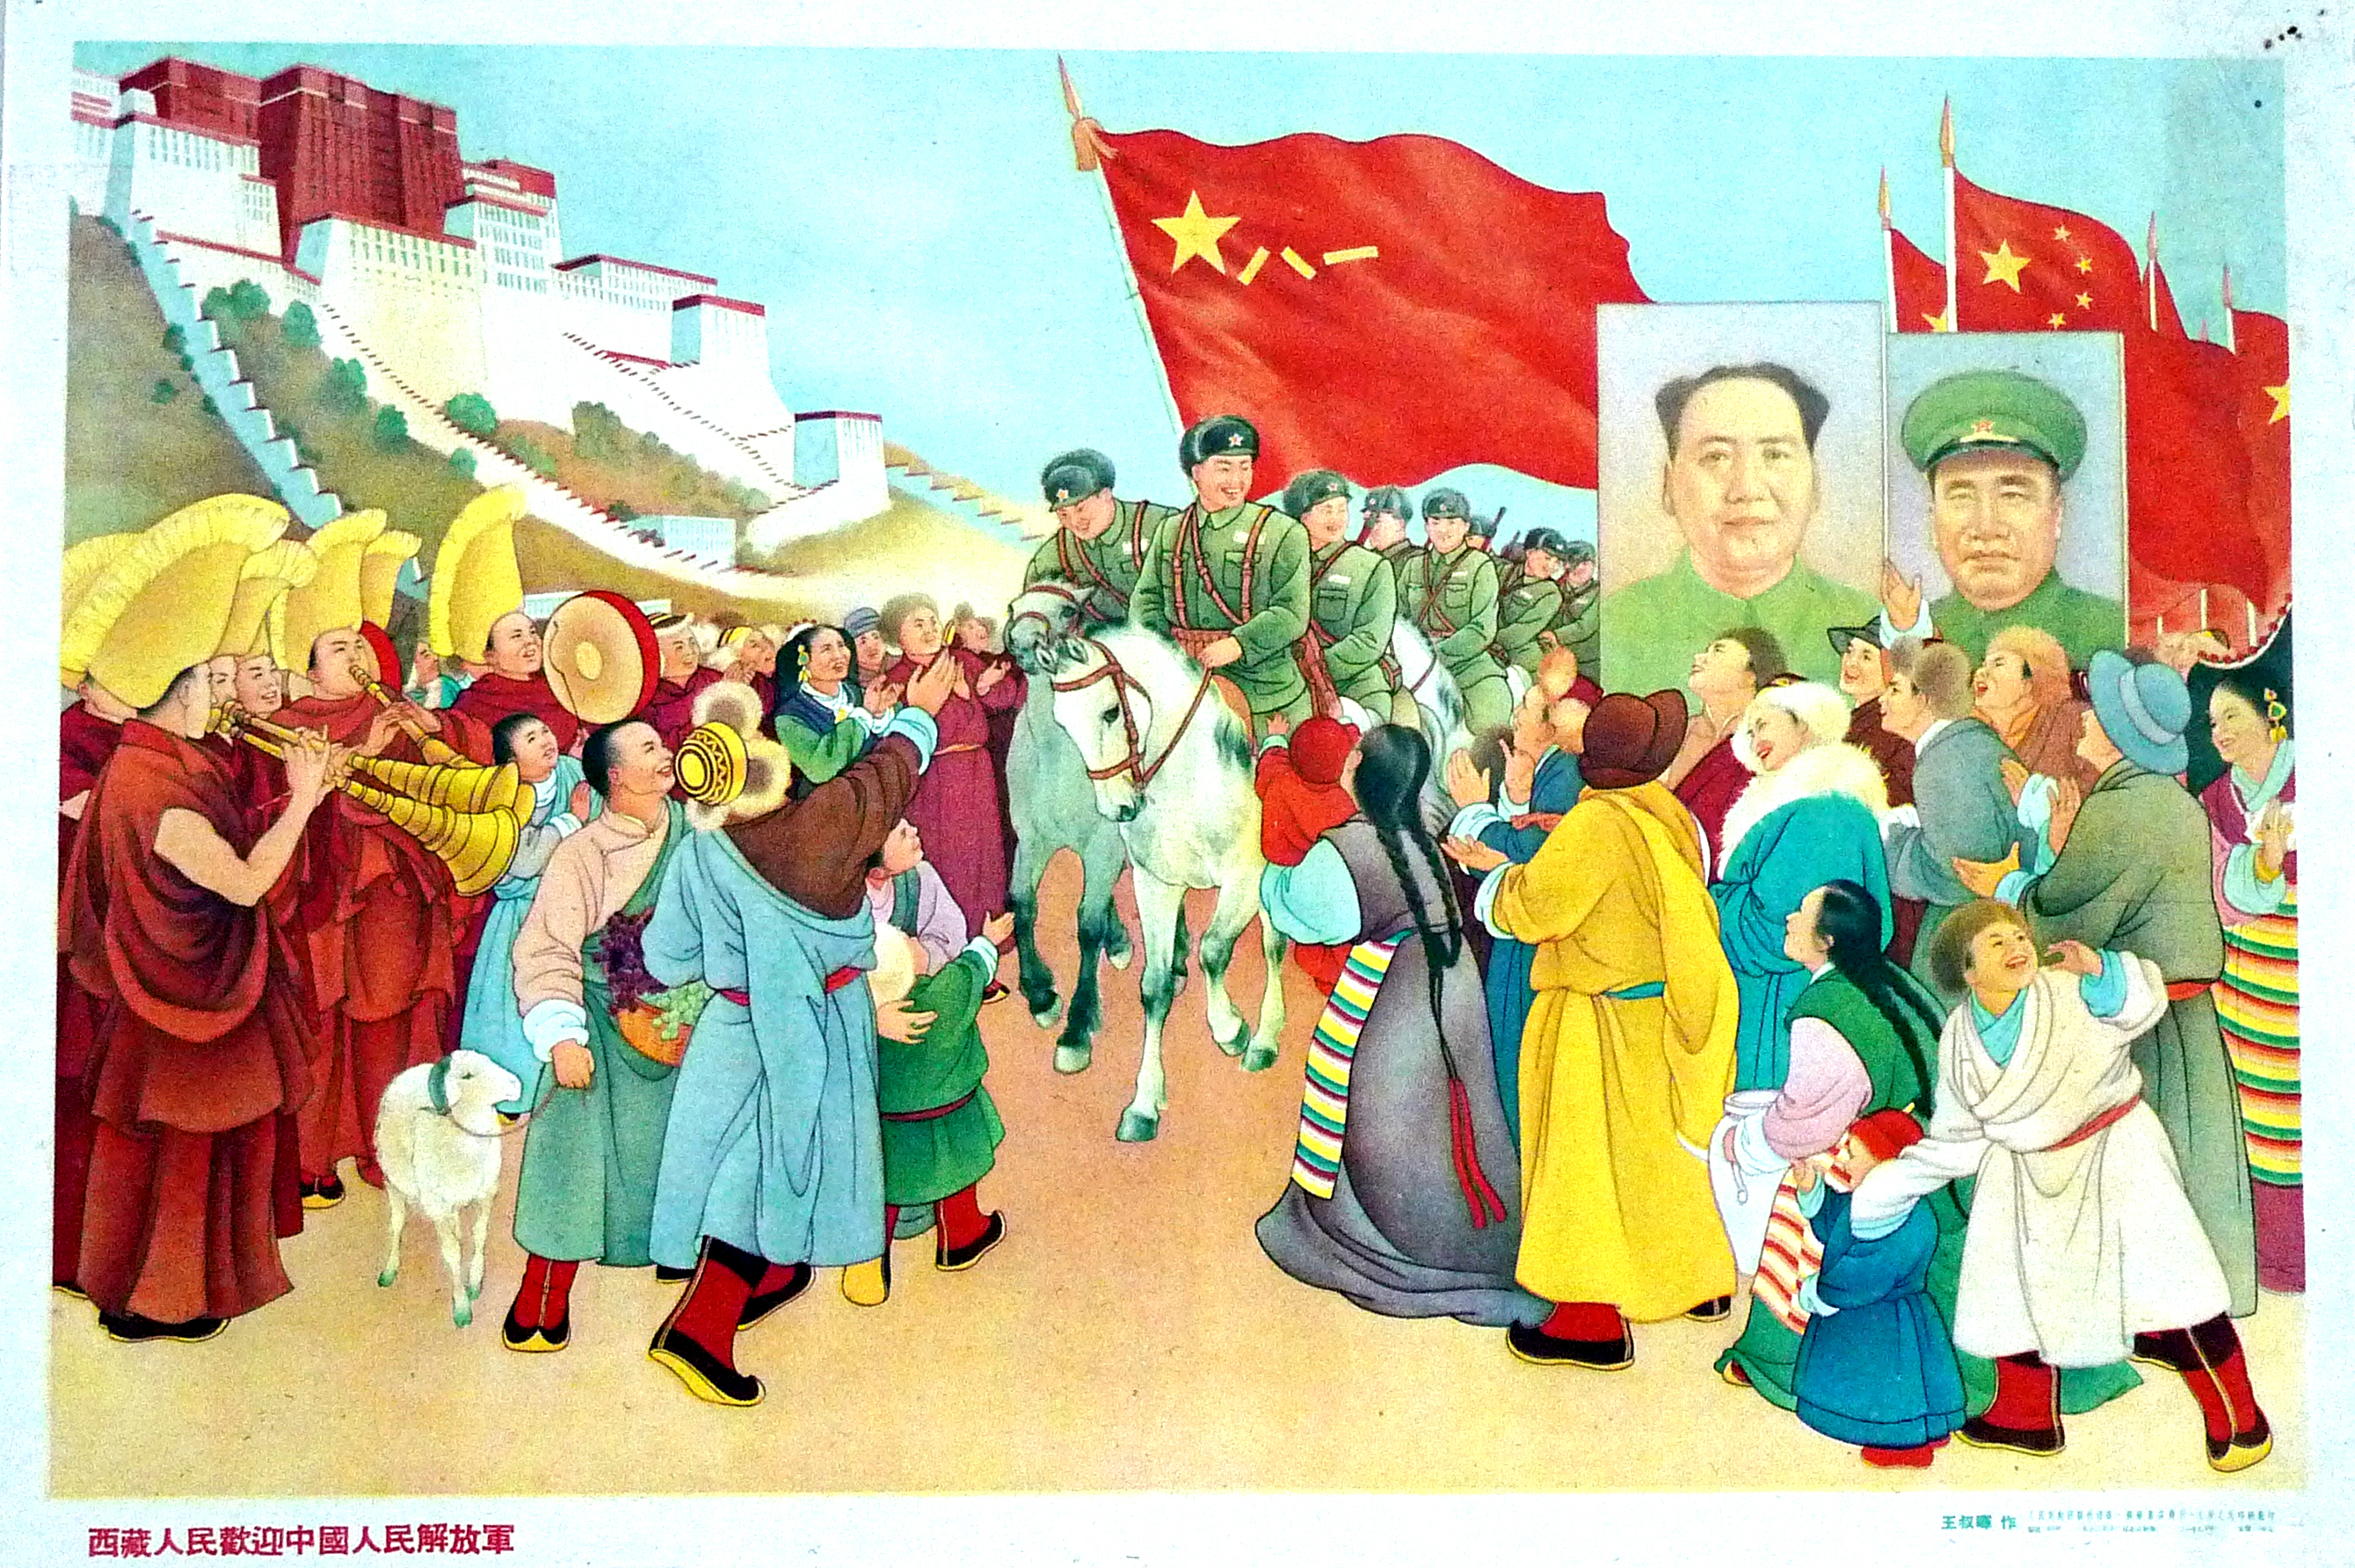 """The Tibetan people welcome the People's Liberation Army."" (Tibet was essentially autonomous for decades before Chinese communist troops entered in 1950.)"